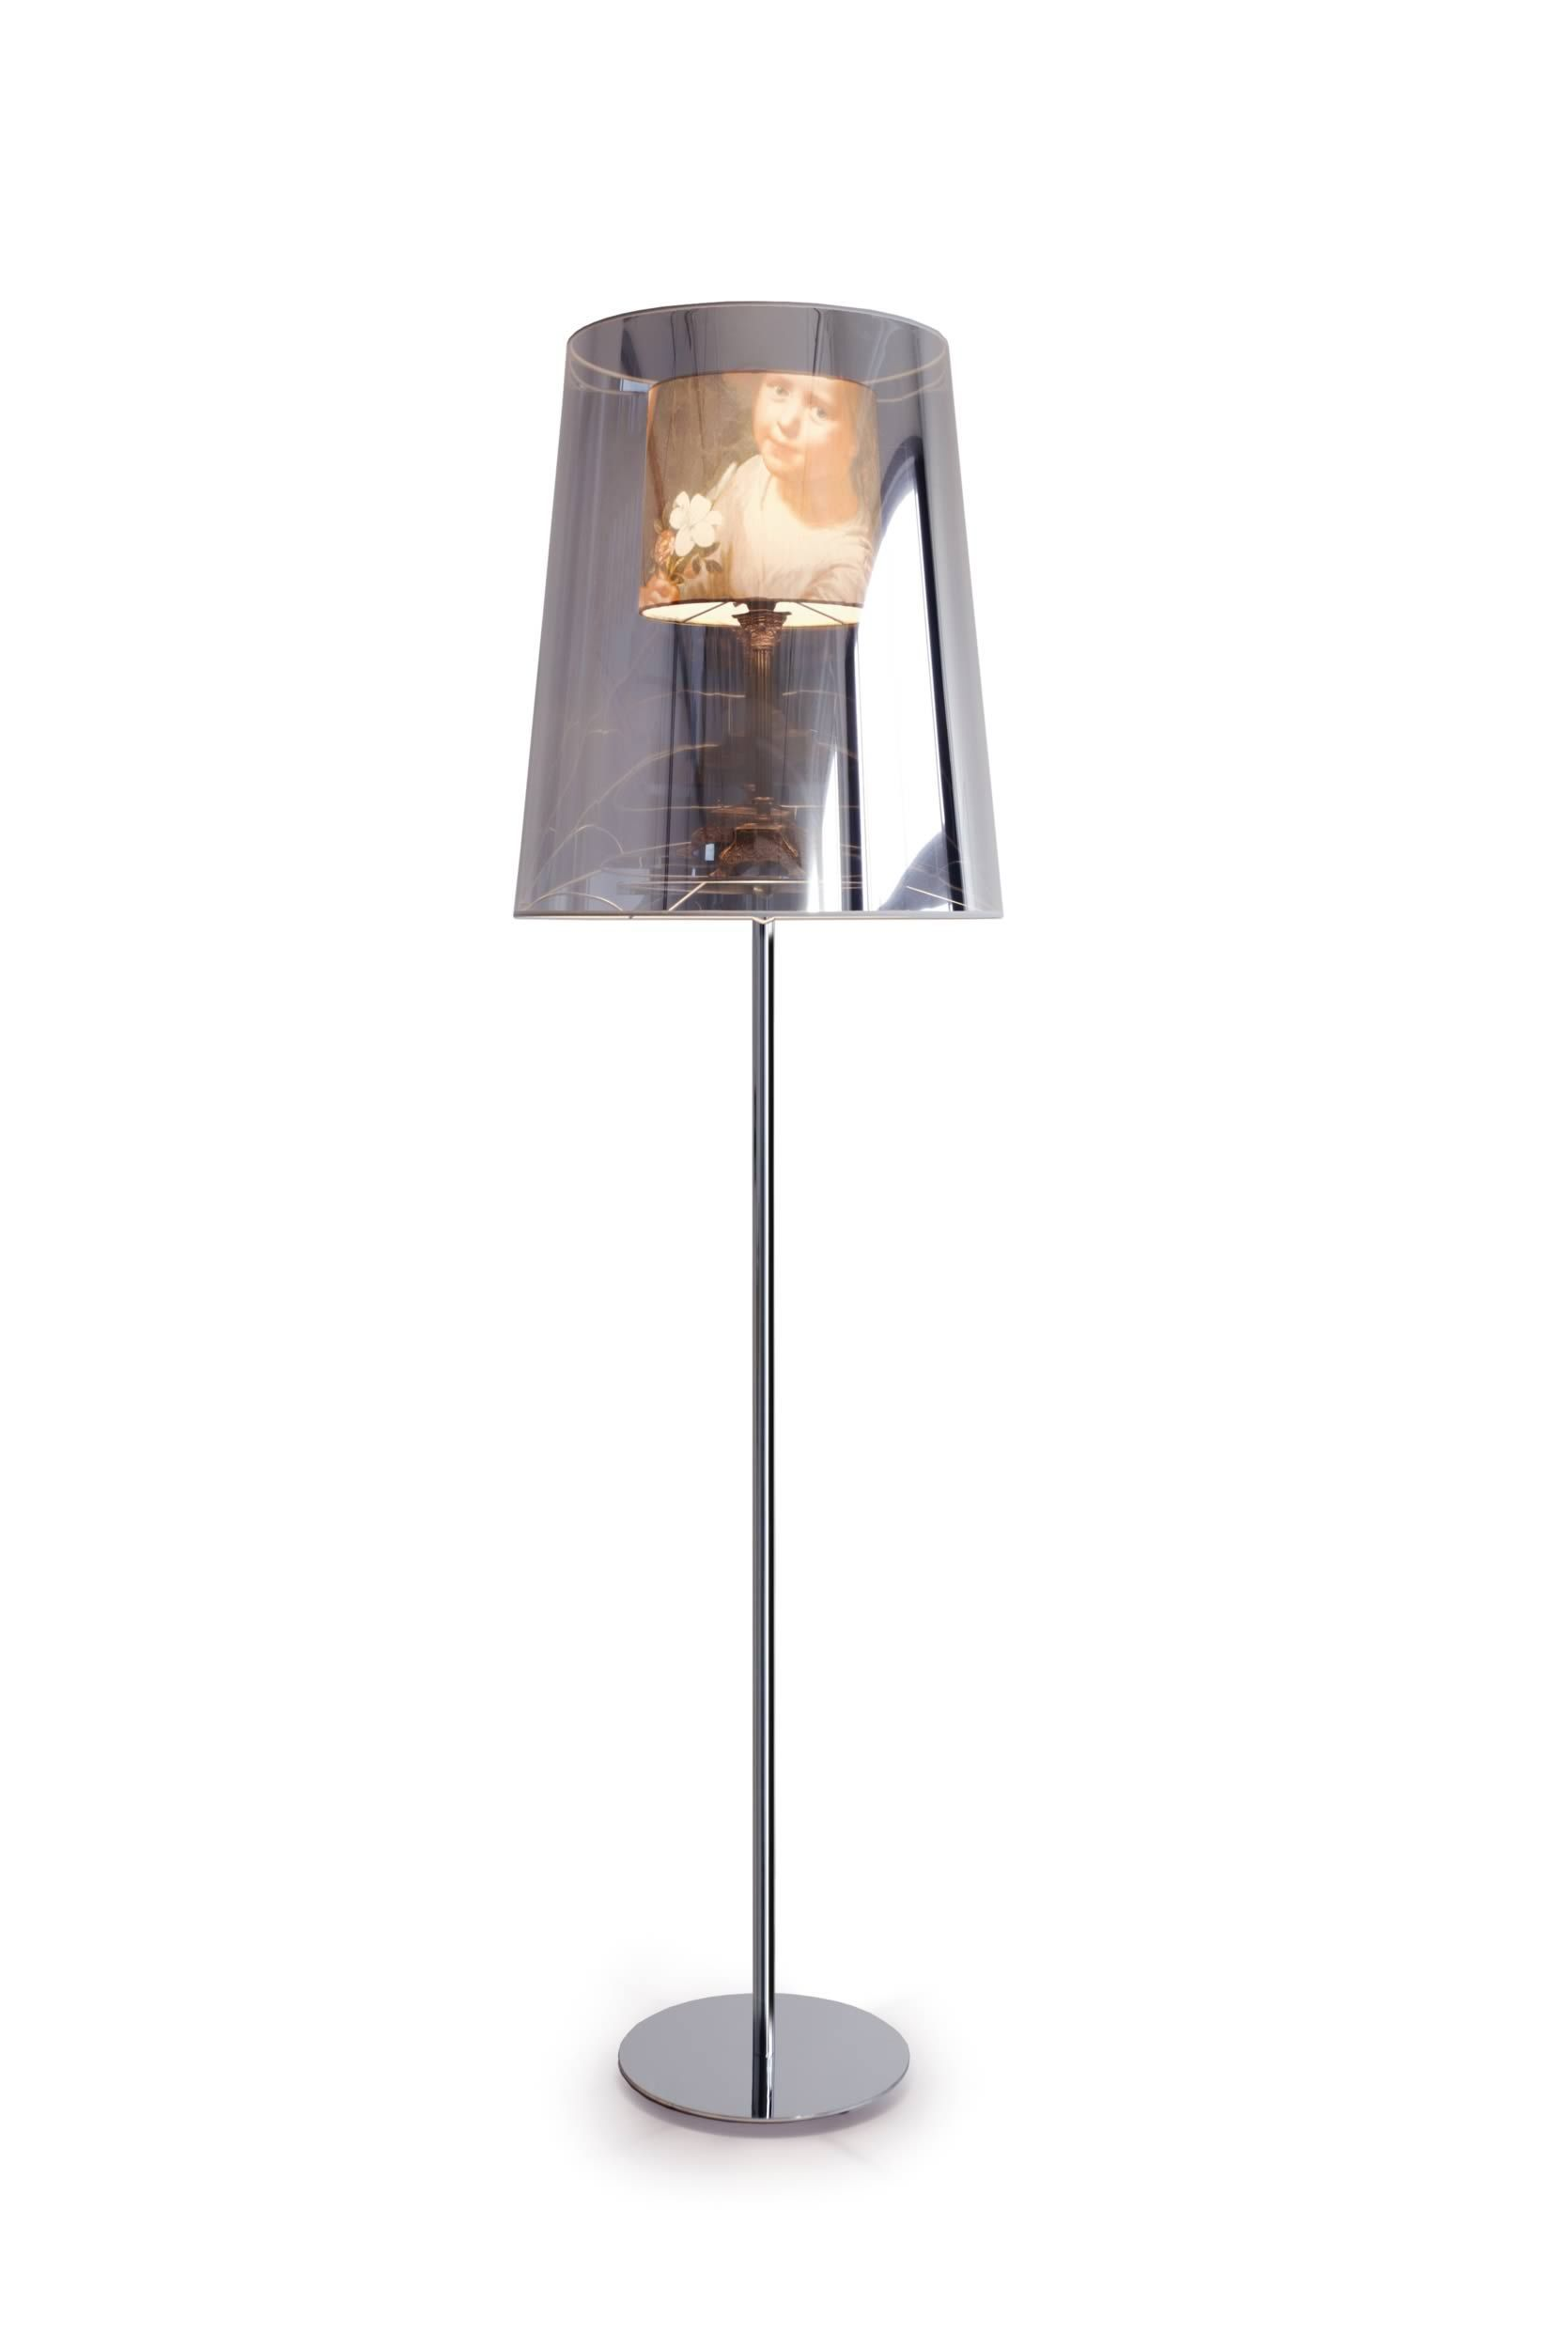 Homepage Floor Lamp Design Oversized Floor Lamp Moooi Light